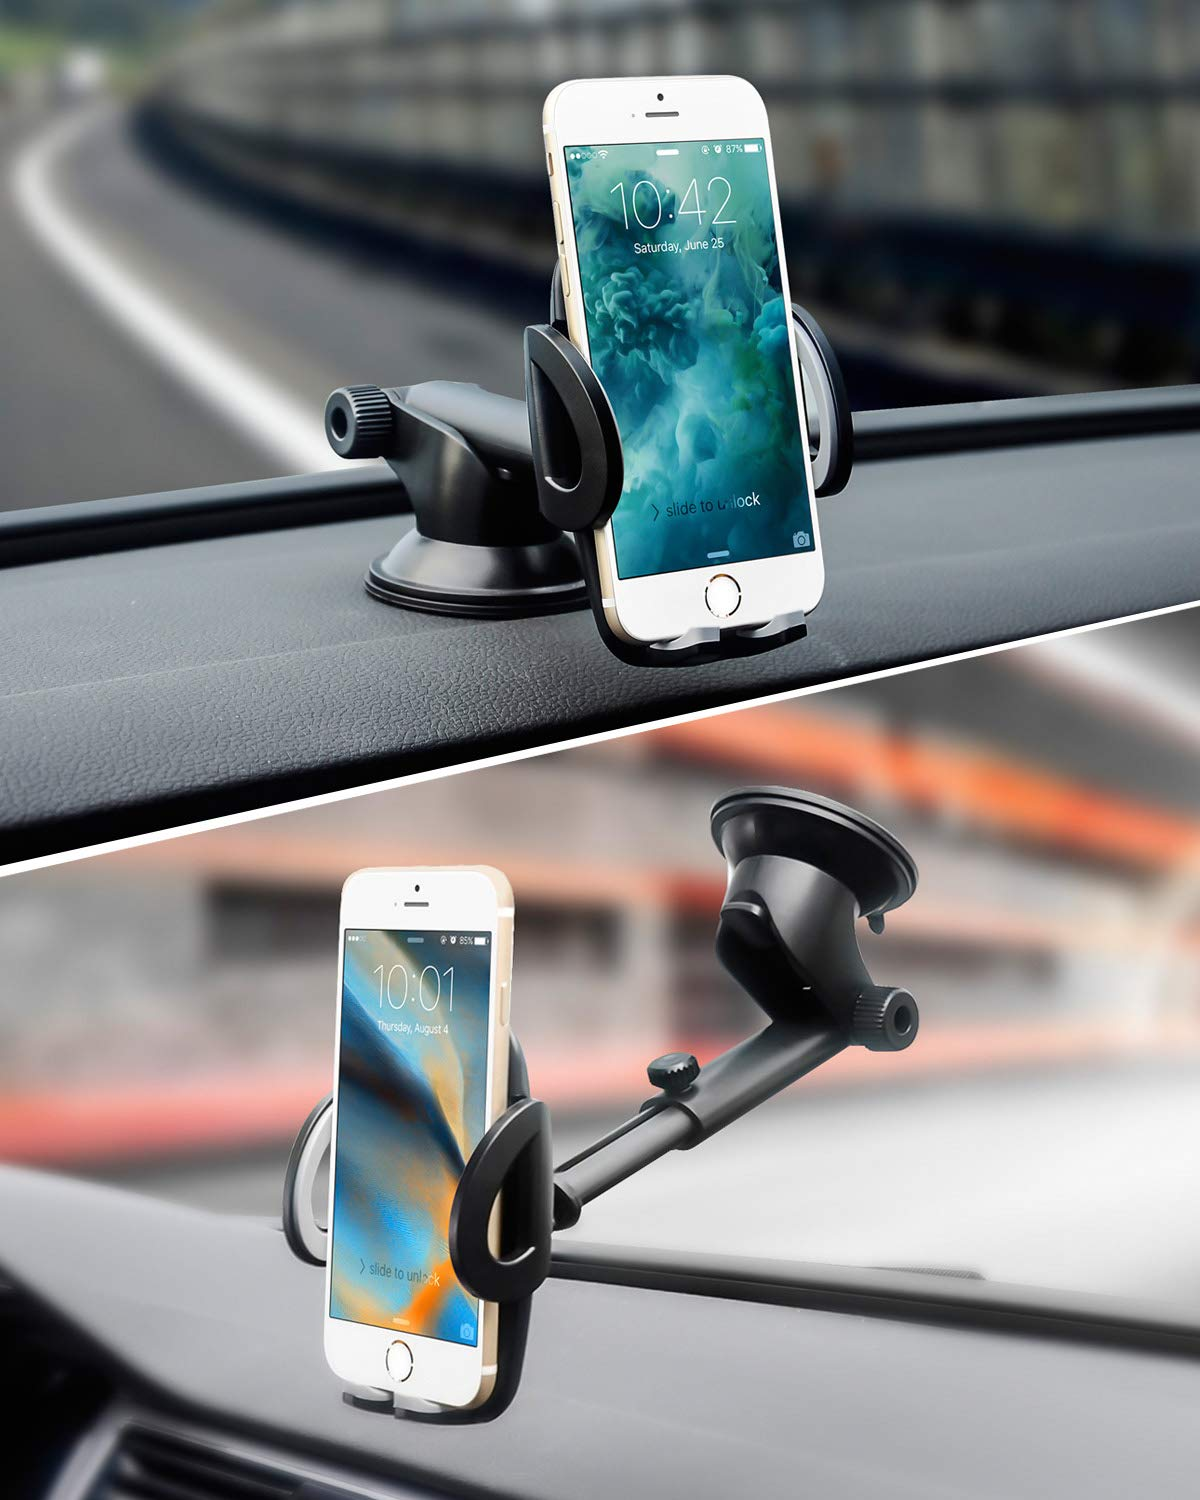 Easy One Touch BERIS Phone Holder for Car Strong Sticky Suction Cup Car Mount Phone Holder for iPhone X XS Max XR 8 Plus Samsung Galaxy /& Other Smartphone. Dashboard Windshield Car Phone Holder